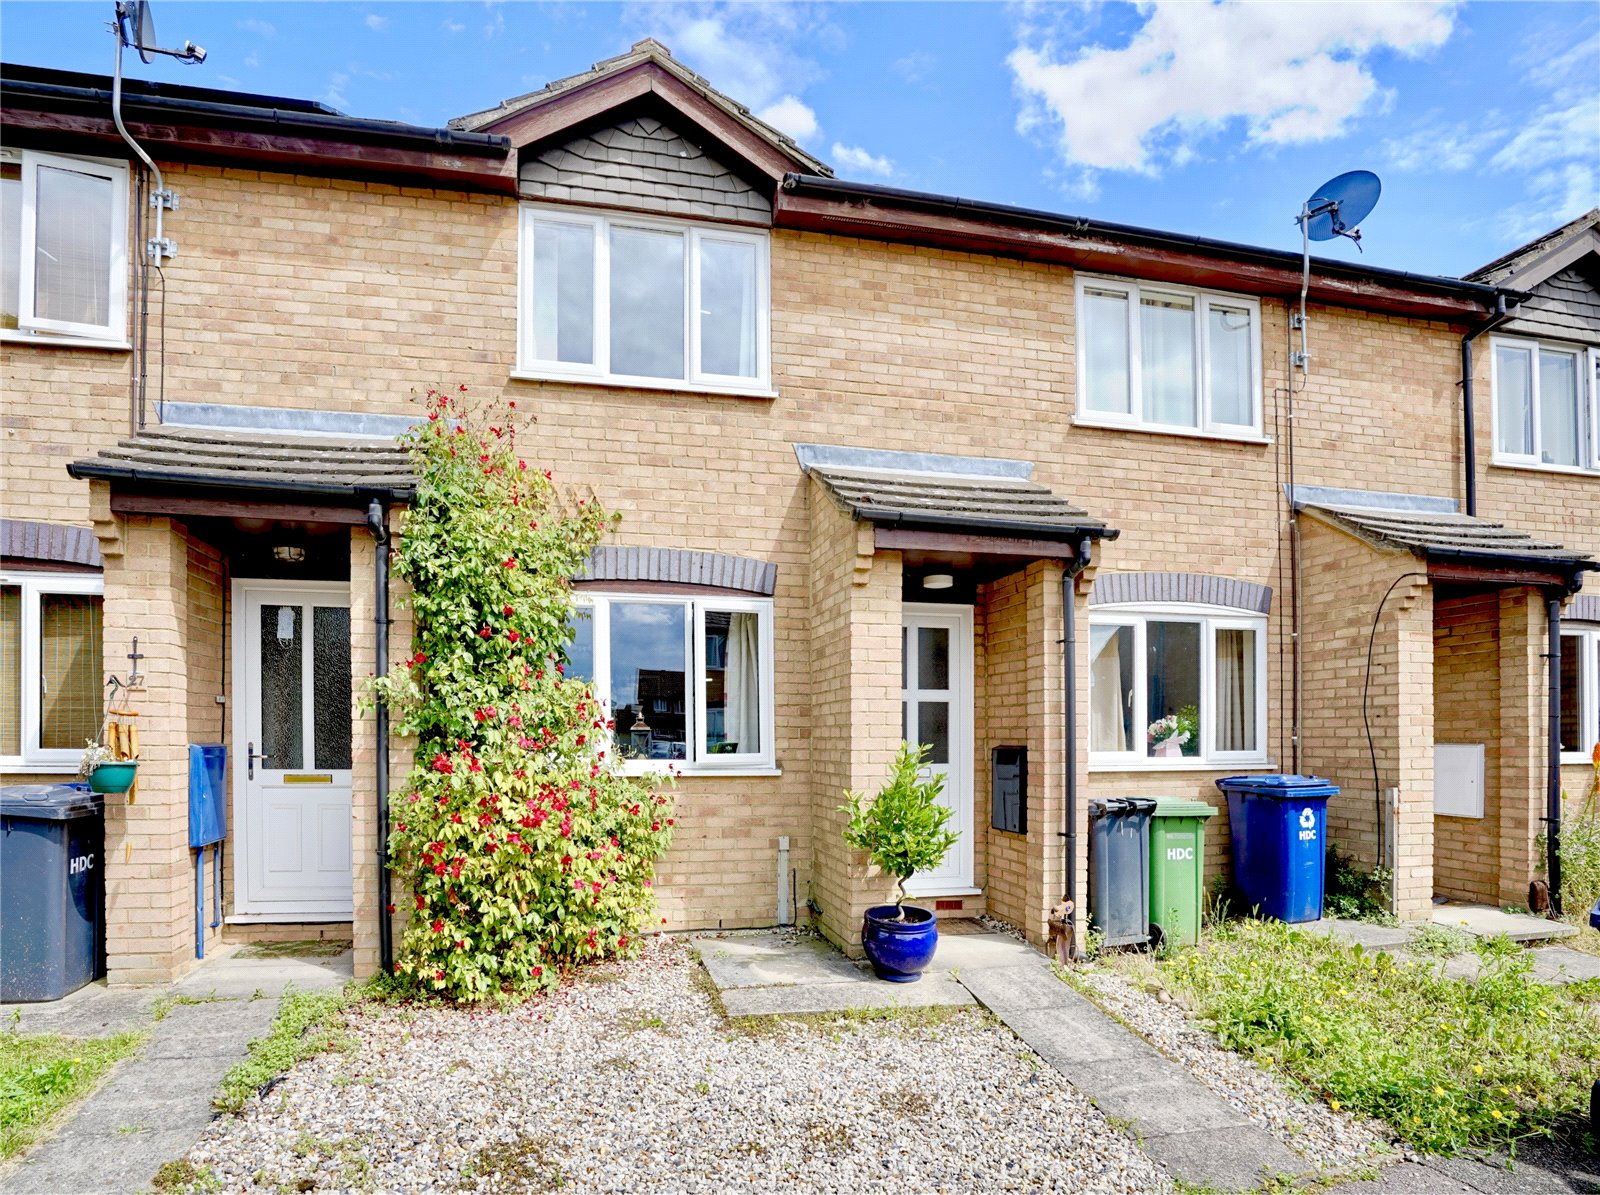 2 bed house for sale in Carisbrooke Way, Eynesbury, PE19